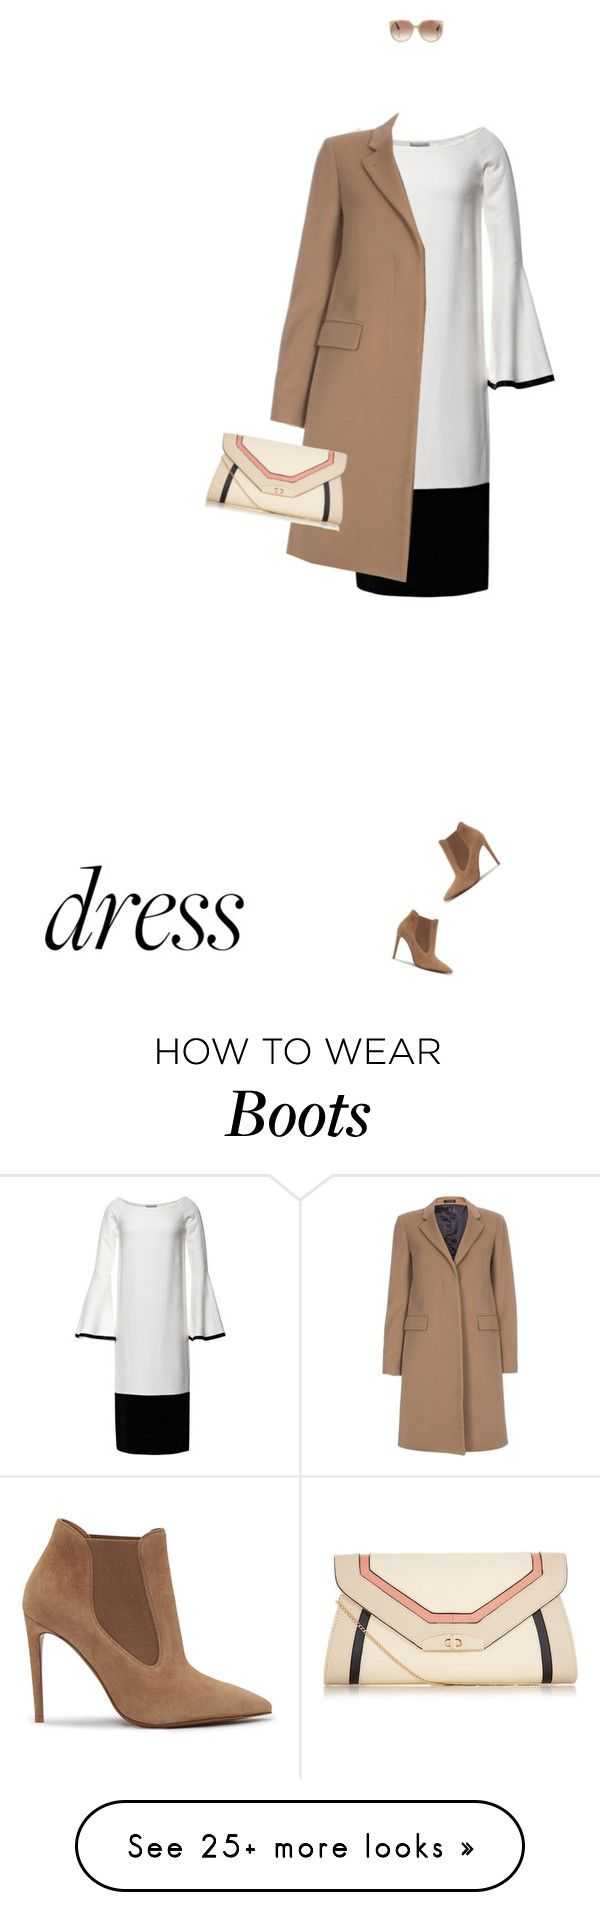 """""""Dress"""" by ladylly on Polyvore featuring Kalmanovich, Paul Smith, Ralph Lauren, Tom Ford and bellsleevedress"""